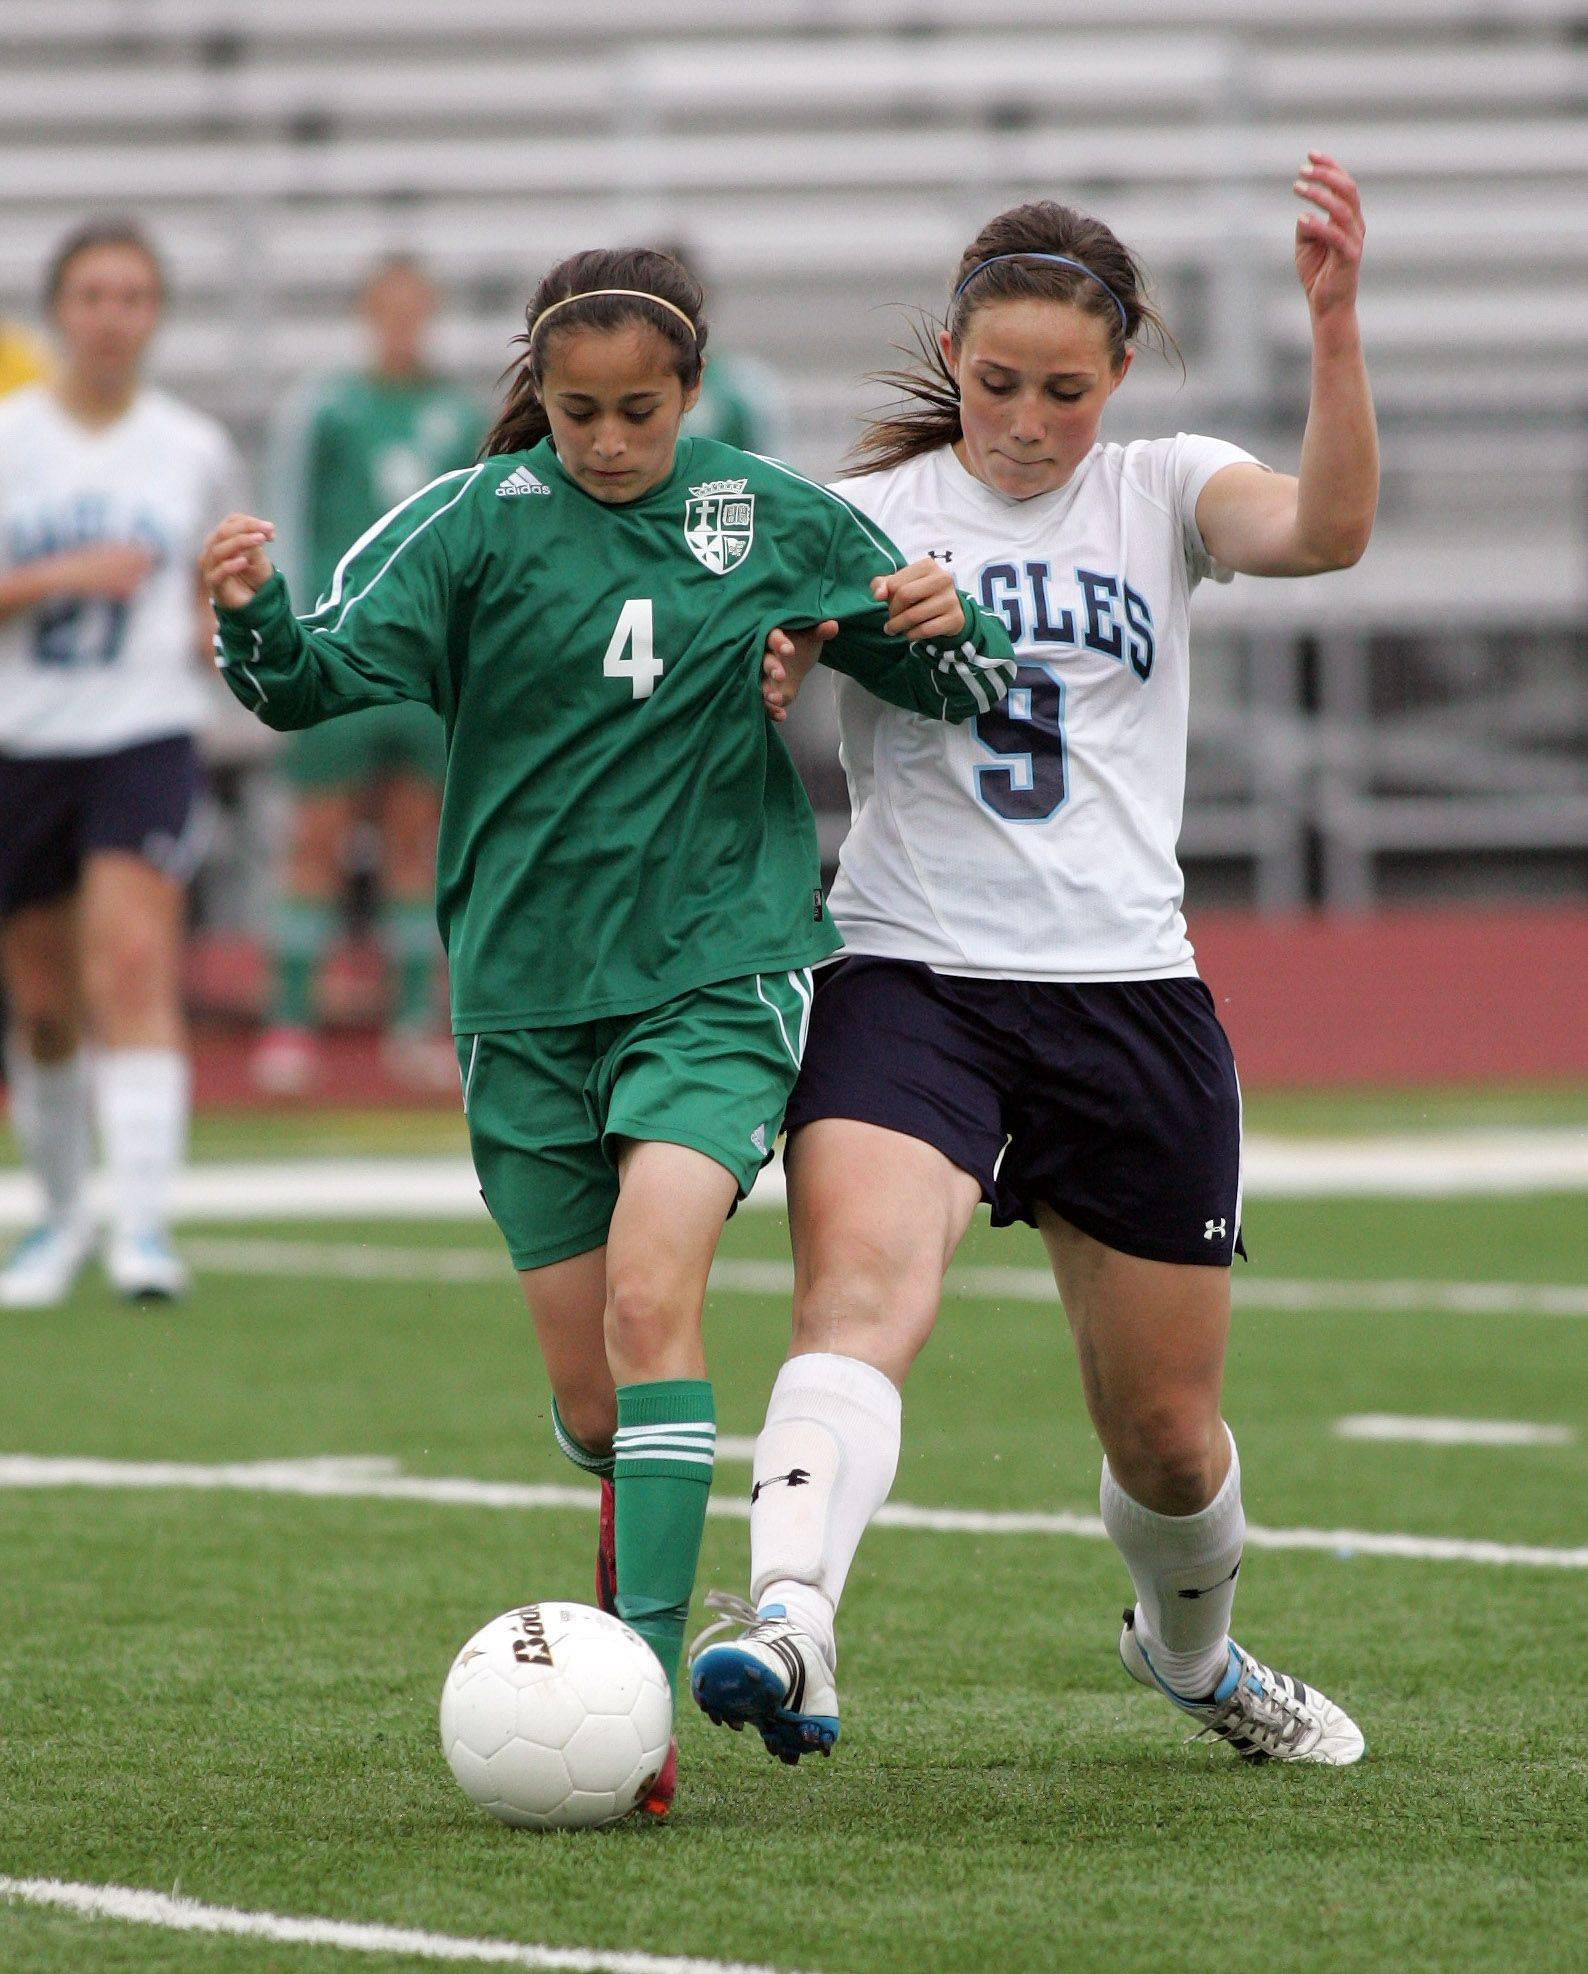 Monica Ramirez, left of St. Edward and Kate Dunaway, right, of Willows Academy in Class 1A state soccer third place match in Naperville on Saturday.